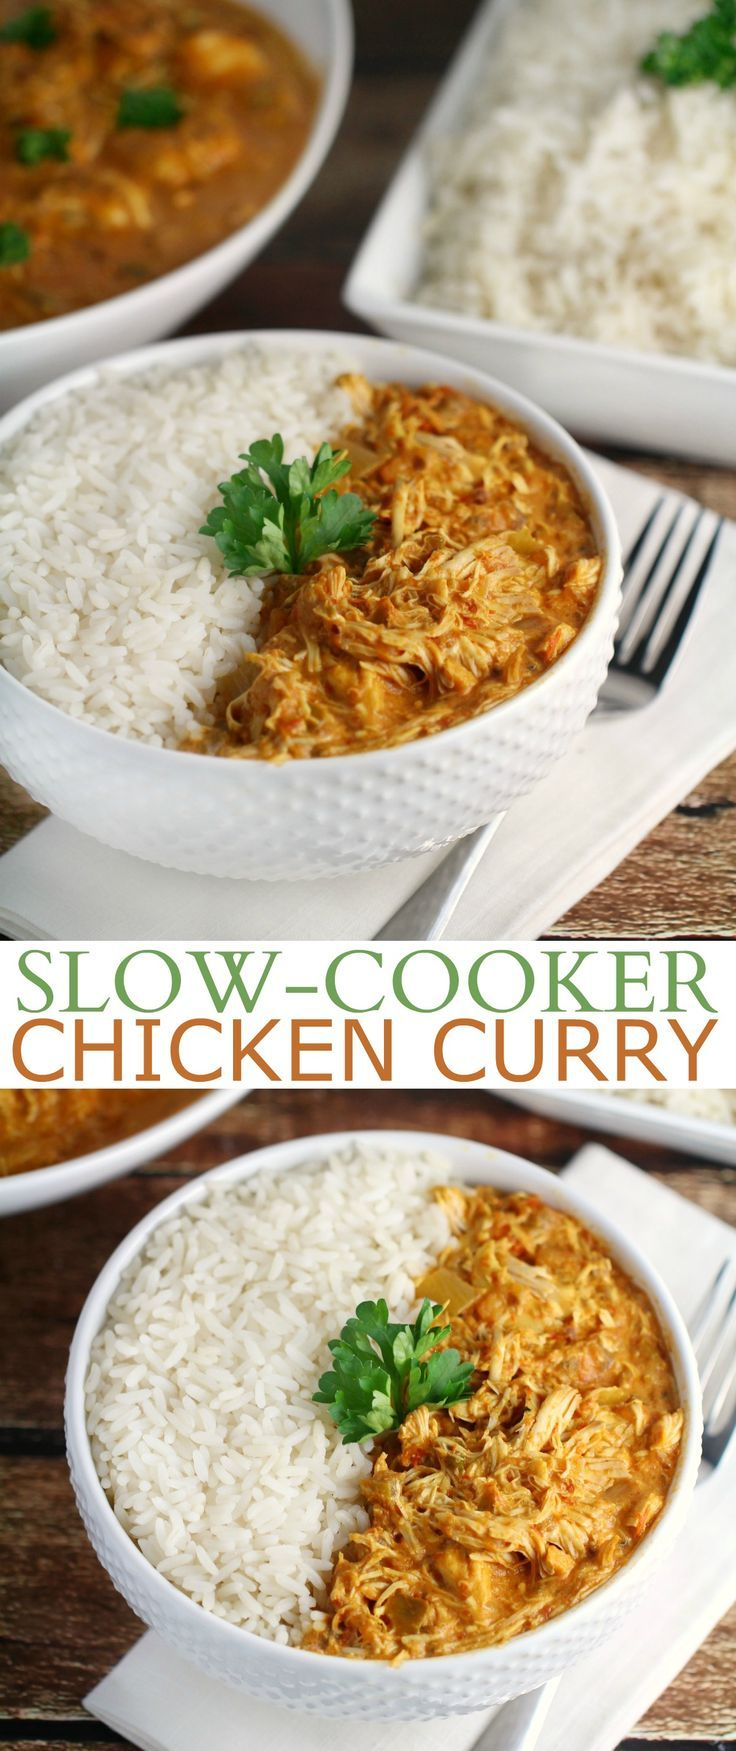 This Slow-Cooker Chicken Curry Recipe is super easy to throw together and full…